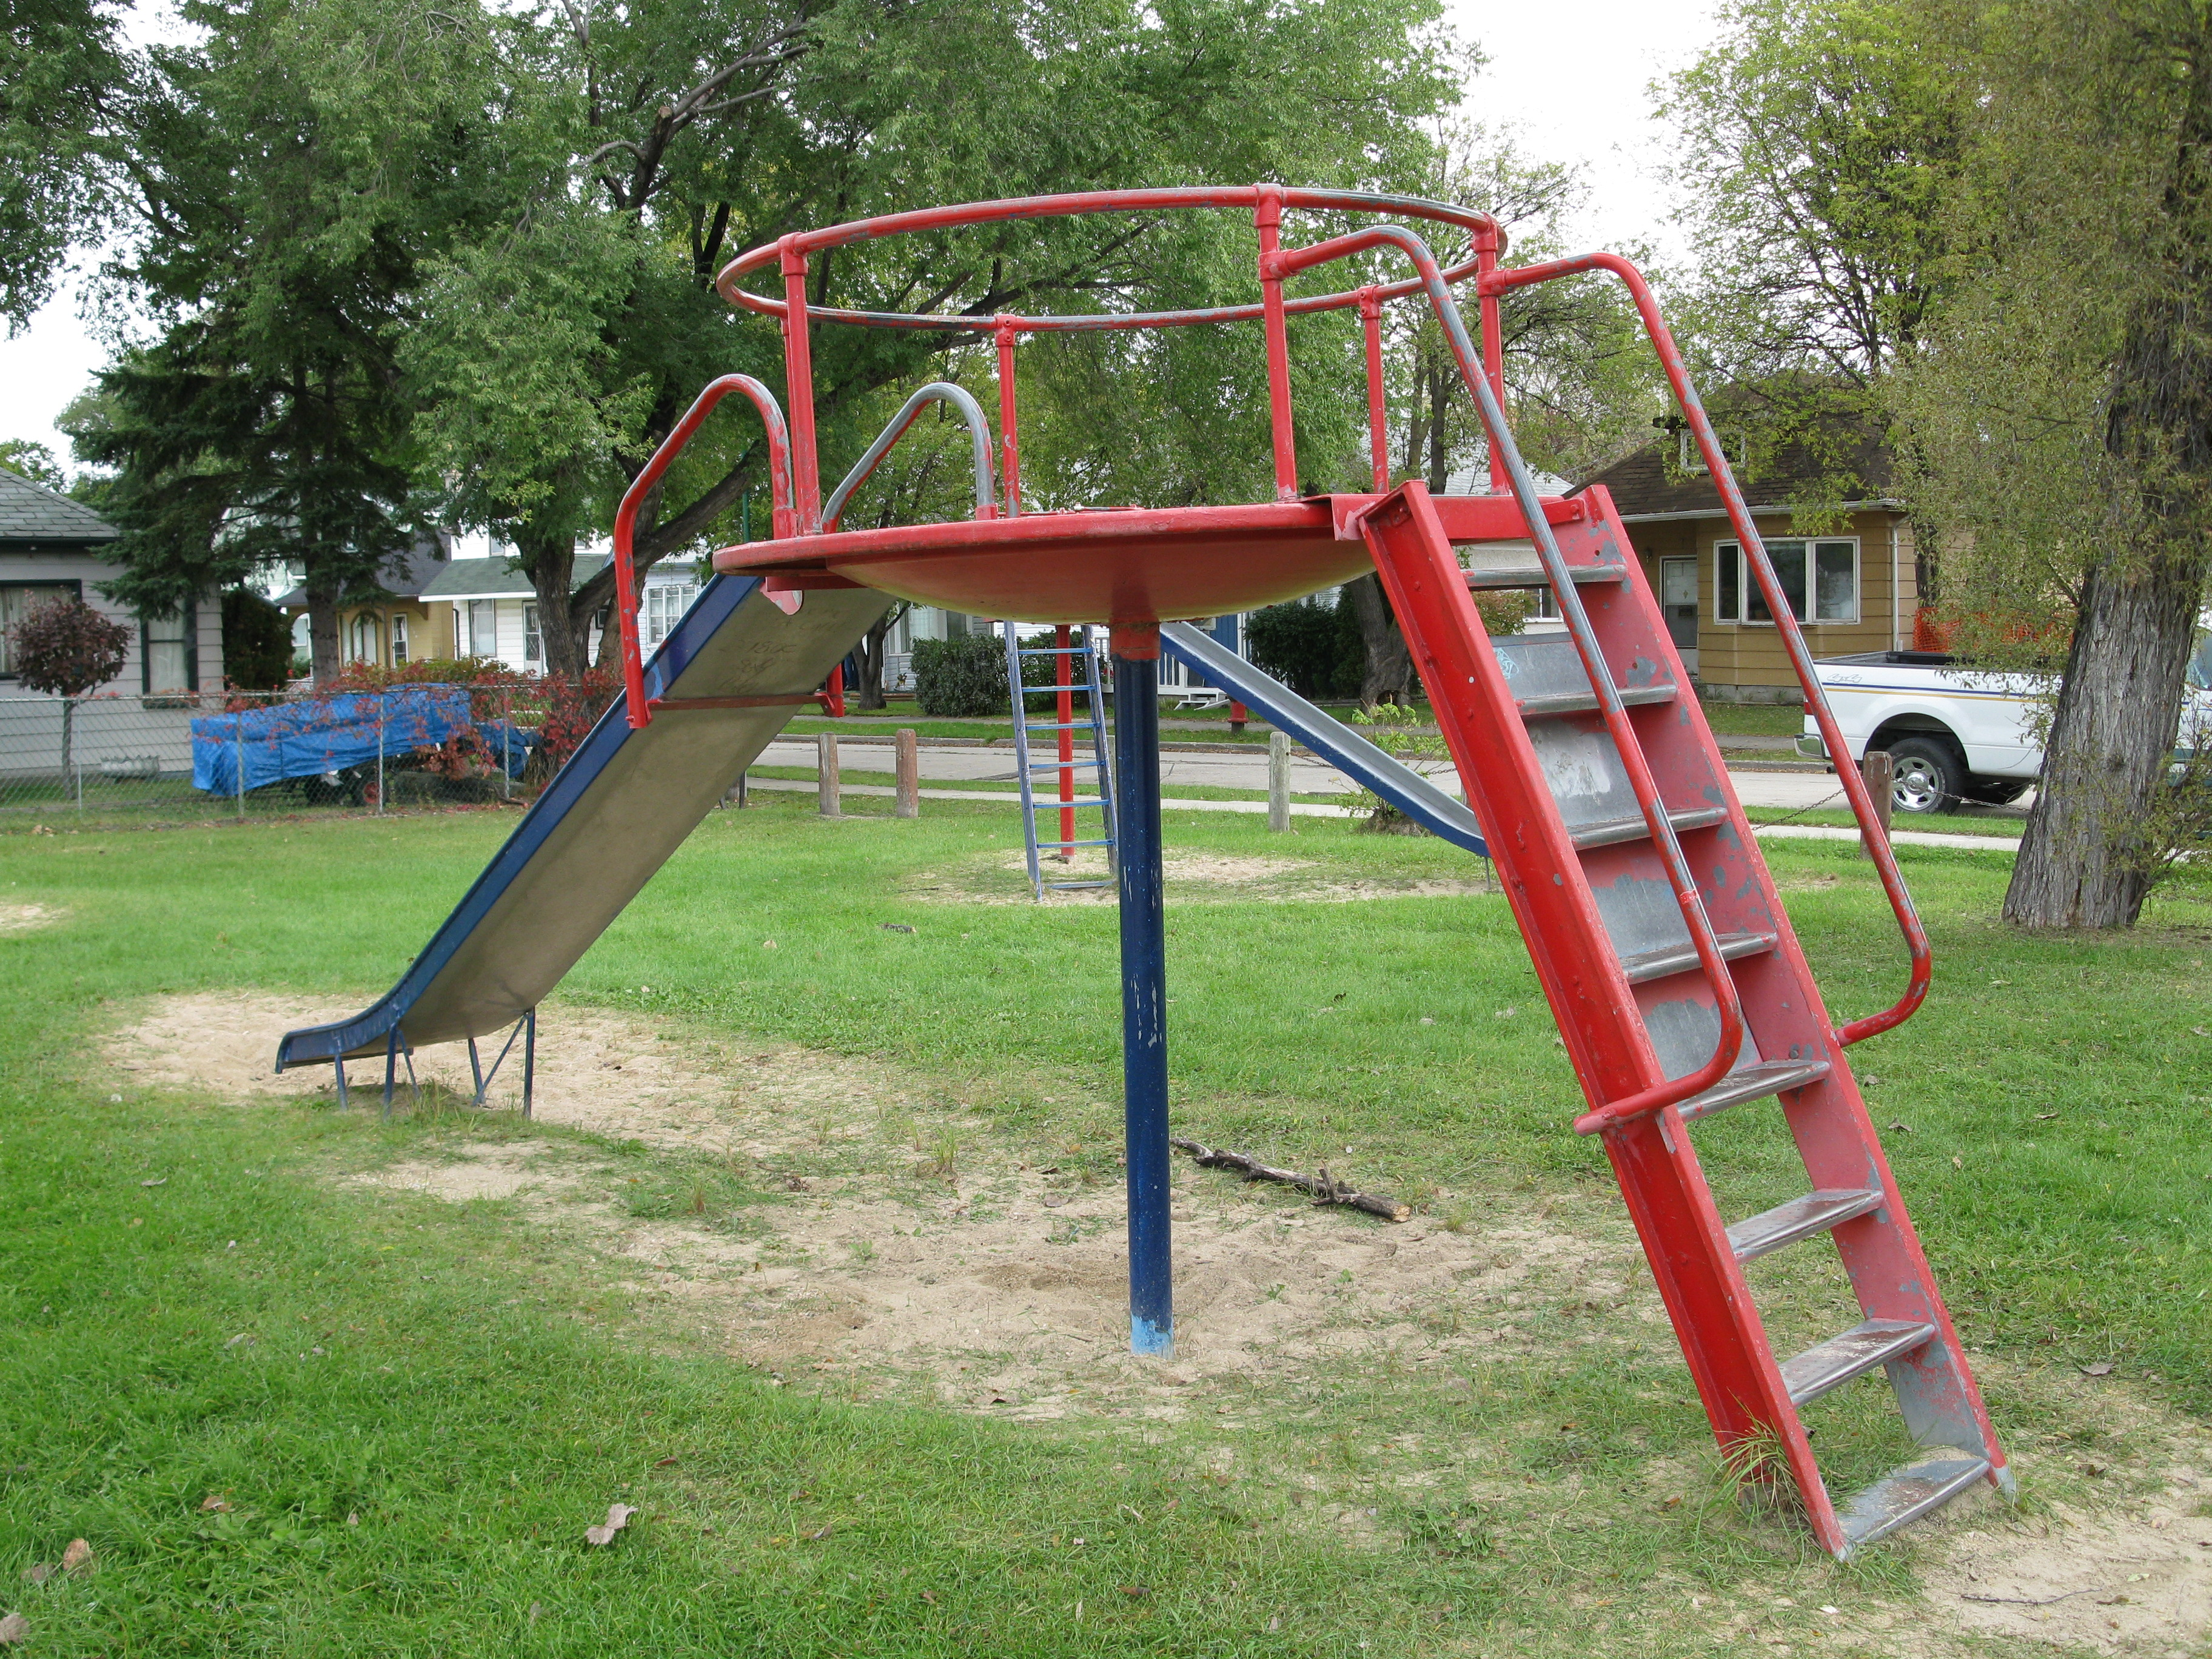 1000 images about old playground equipment on pinterest for Playground equipment ideas